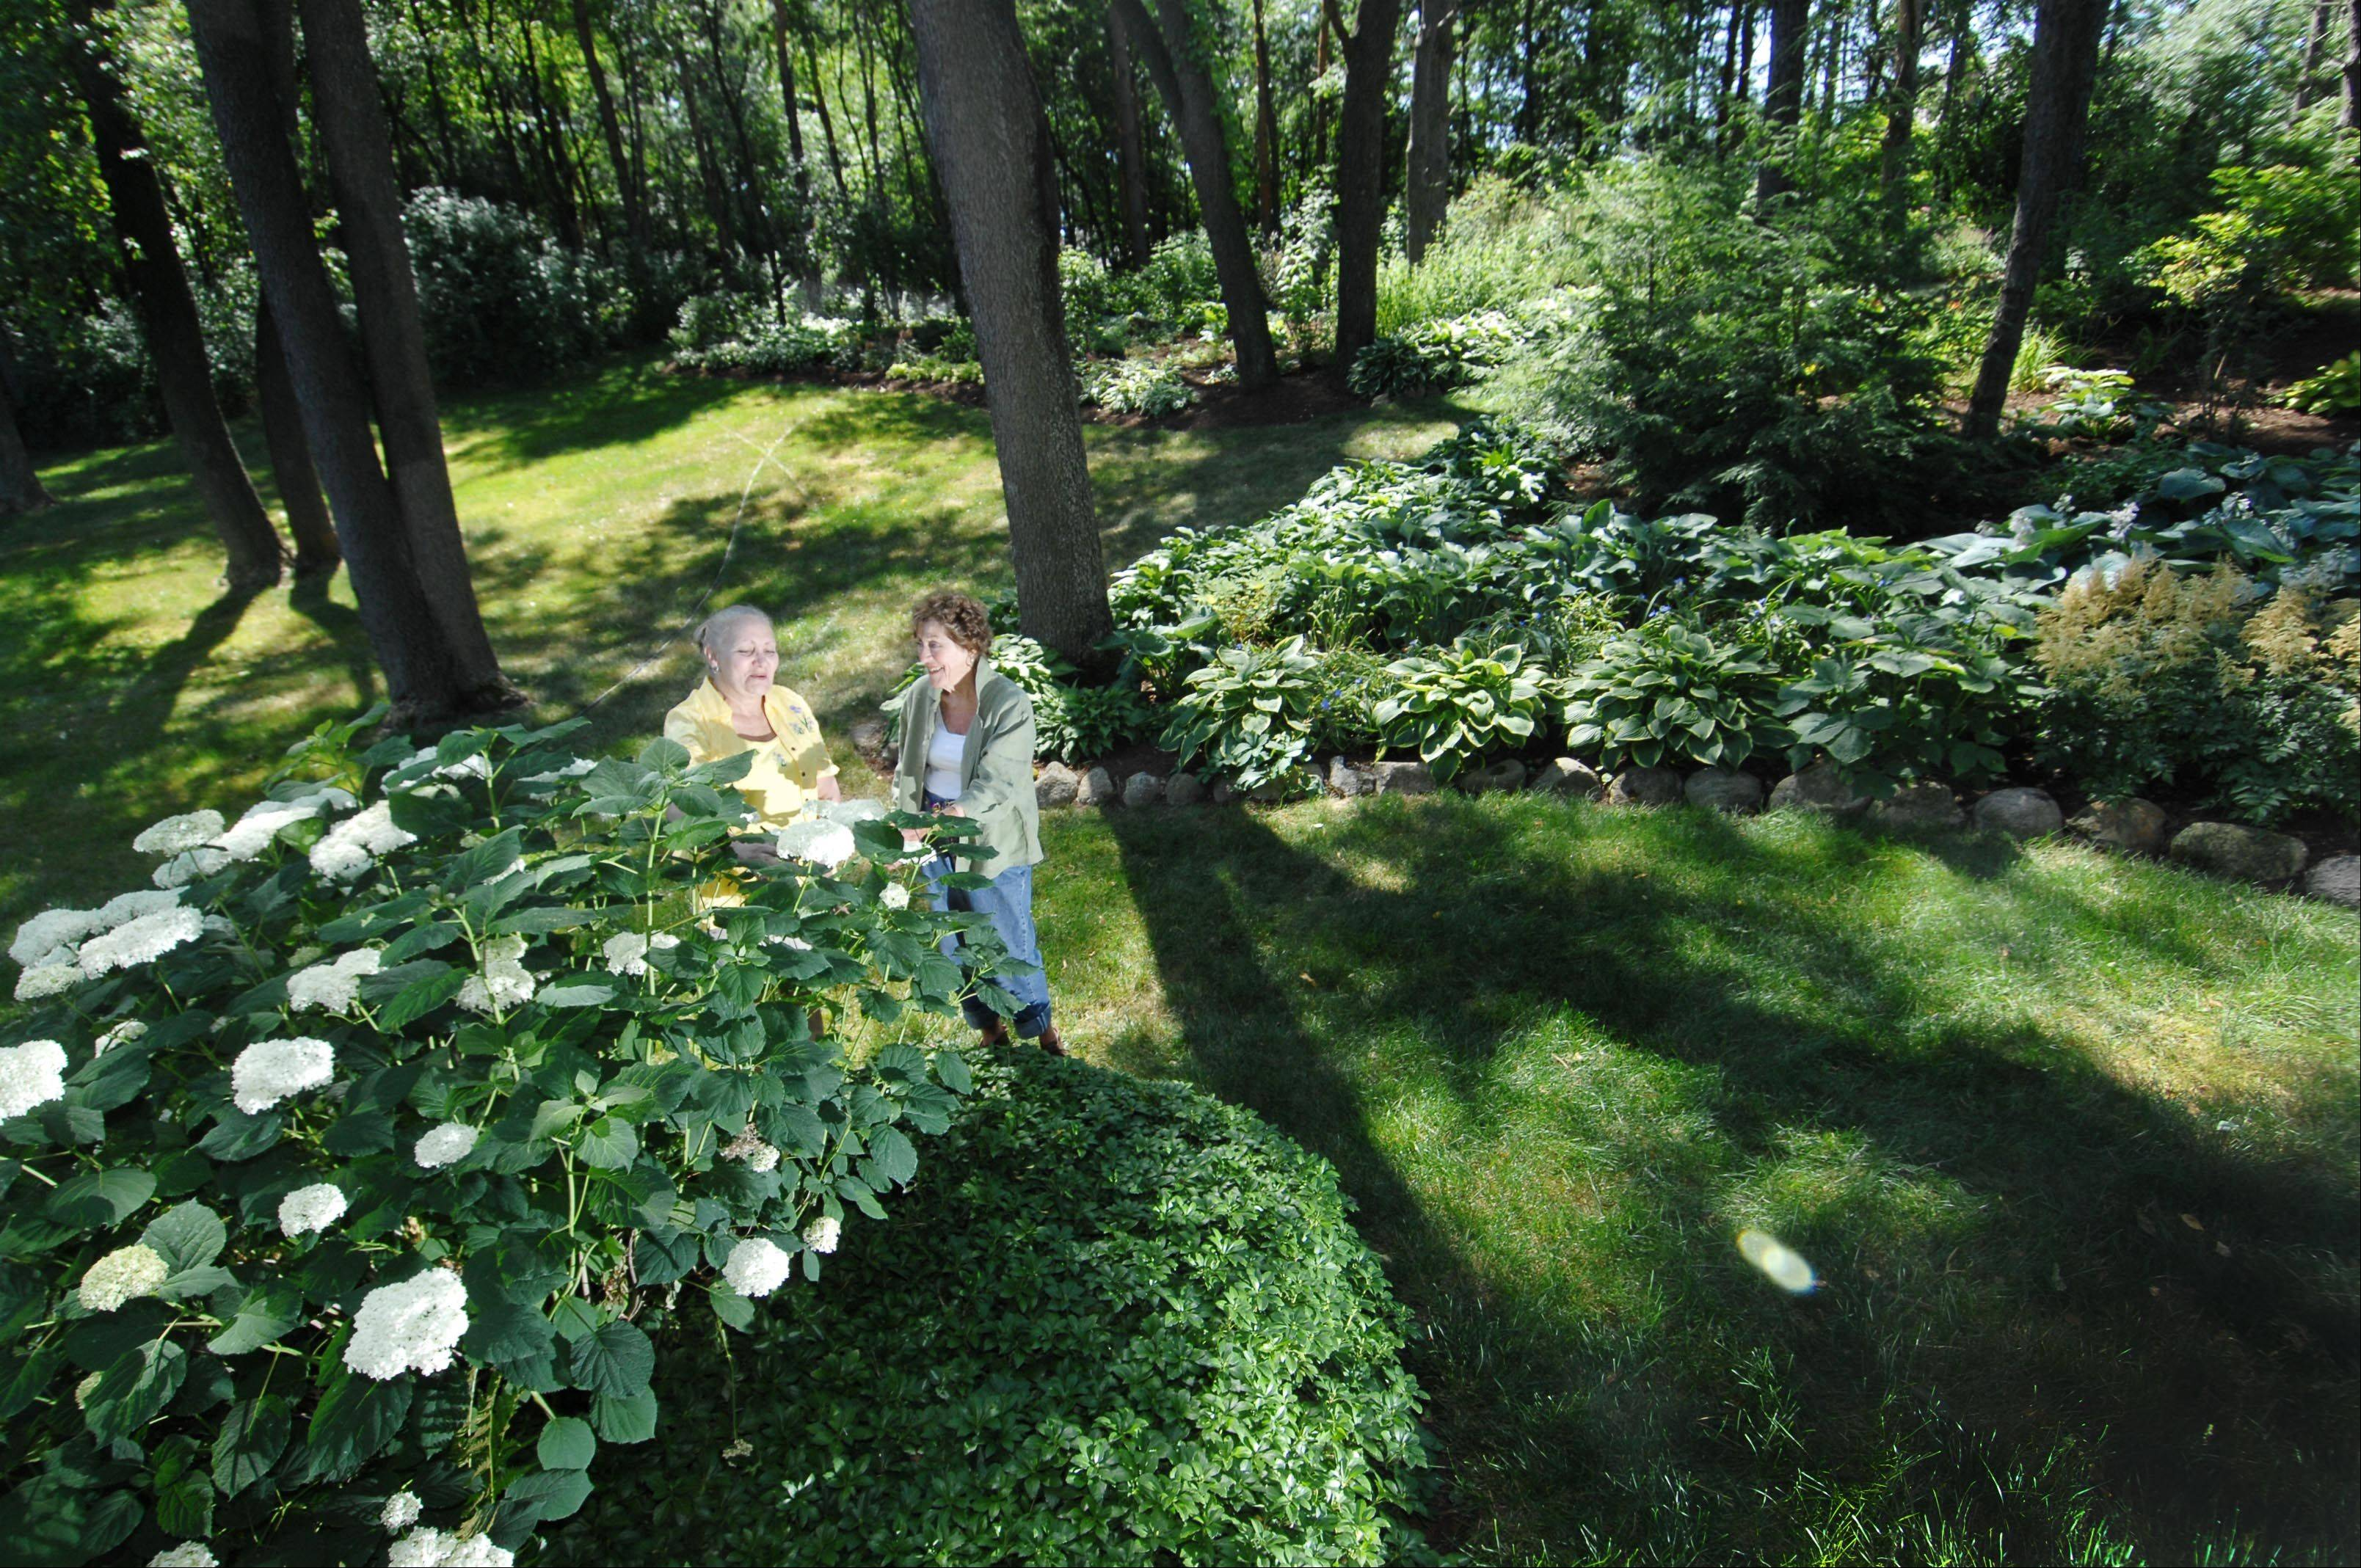 Debby Staley, co-chair of Bull Valley's Garden Treasures garden walk, and Nancy Jung, one of the garden coordinators, show off one of many hydrangeas in Tranquility Trails.